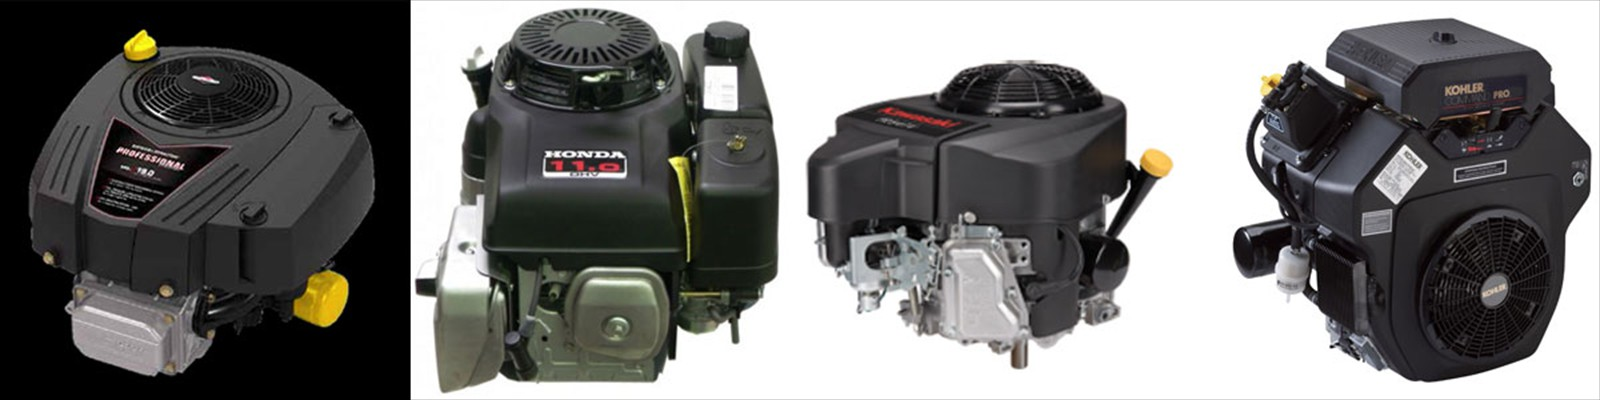 Repowers by Briggs & Stratton, Honda, Kawasaki and Kohler